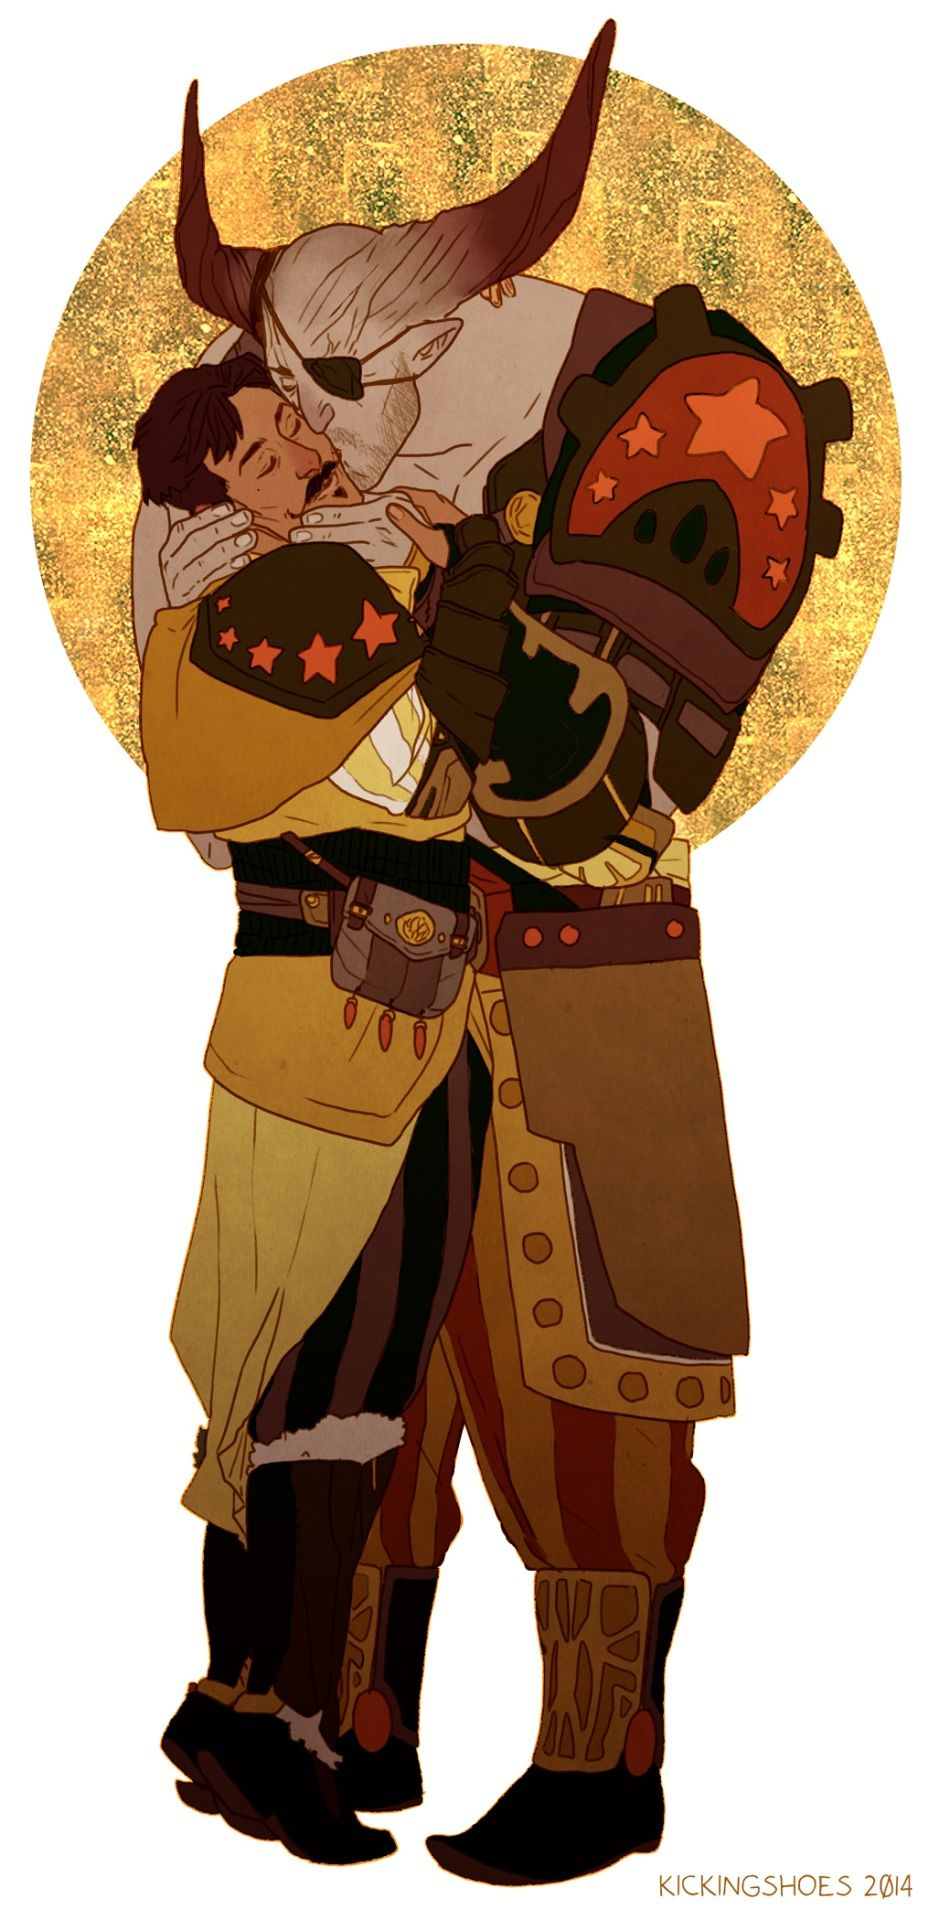 """""""Dorian and Iron Bull. I'm glad I wasn't the only one to think they were good together!"""" And Bull flirts with him. (Bull's amazing flirting SKILLZ! xD )"""